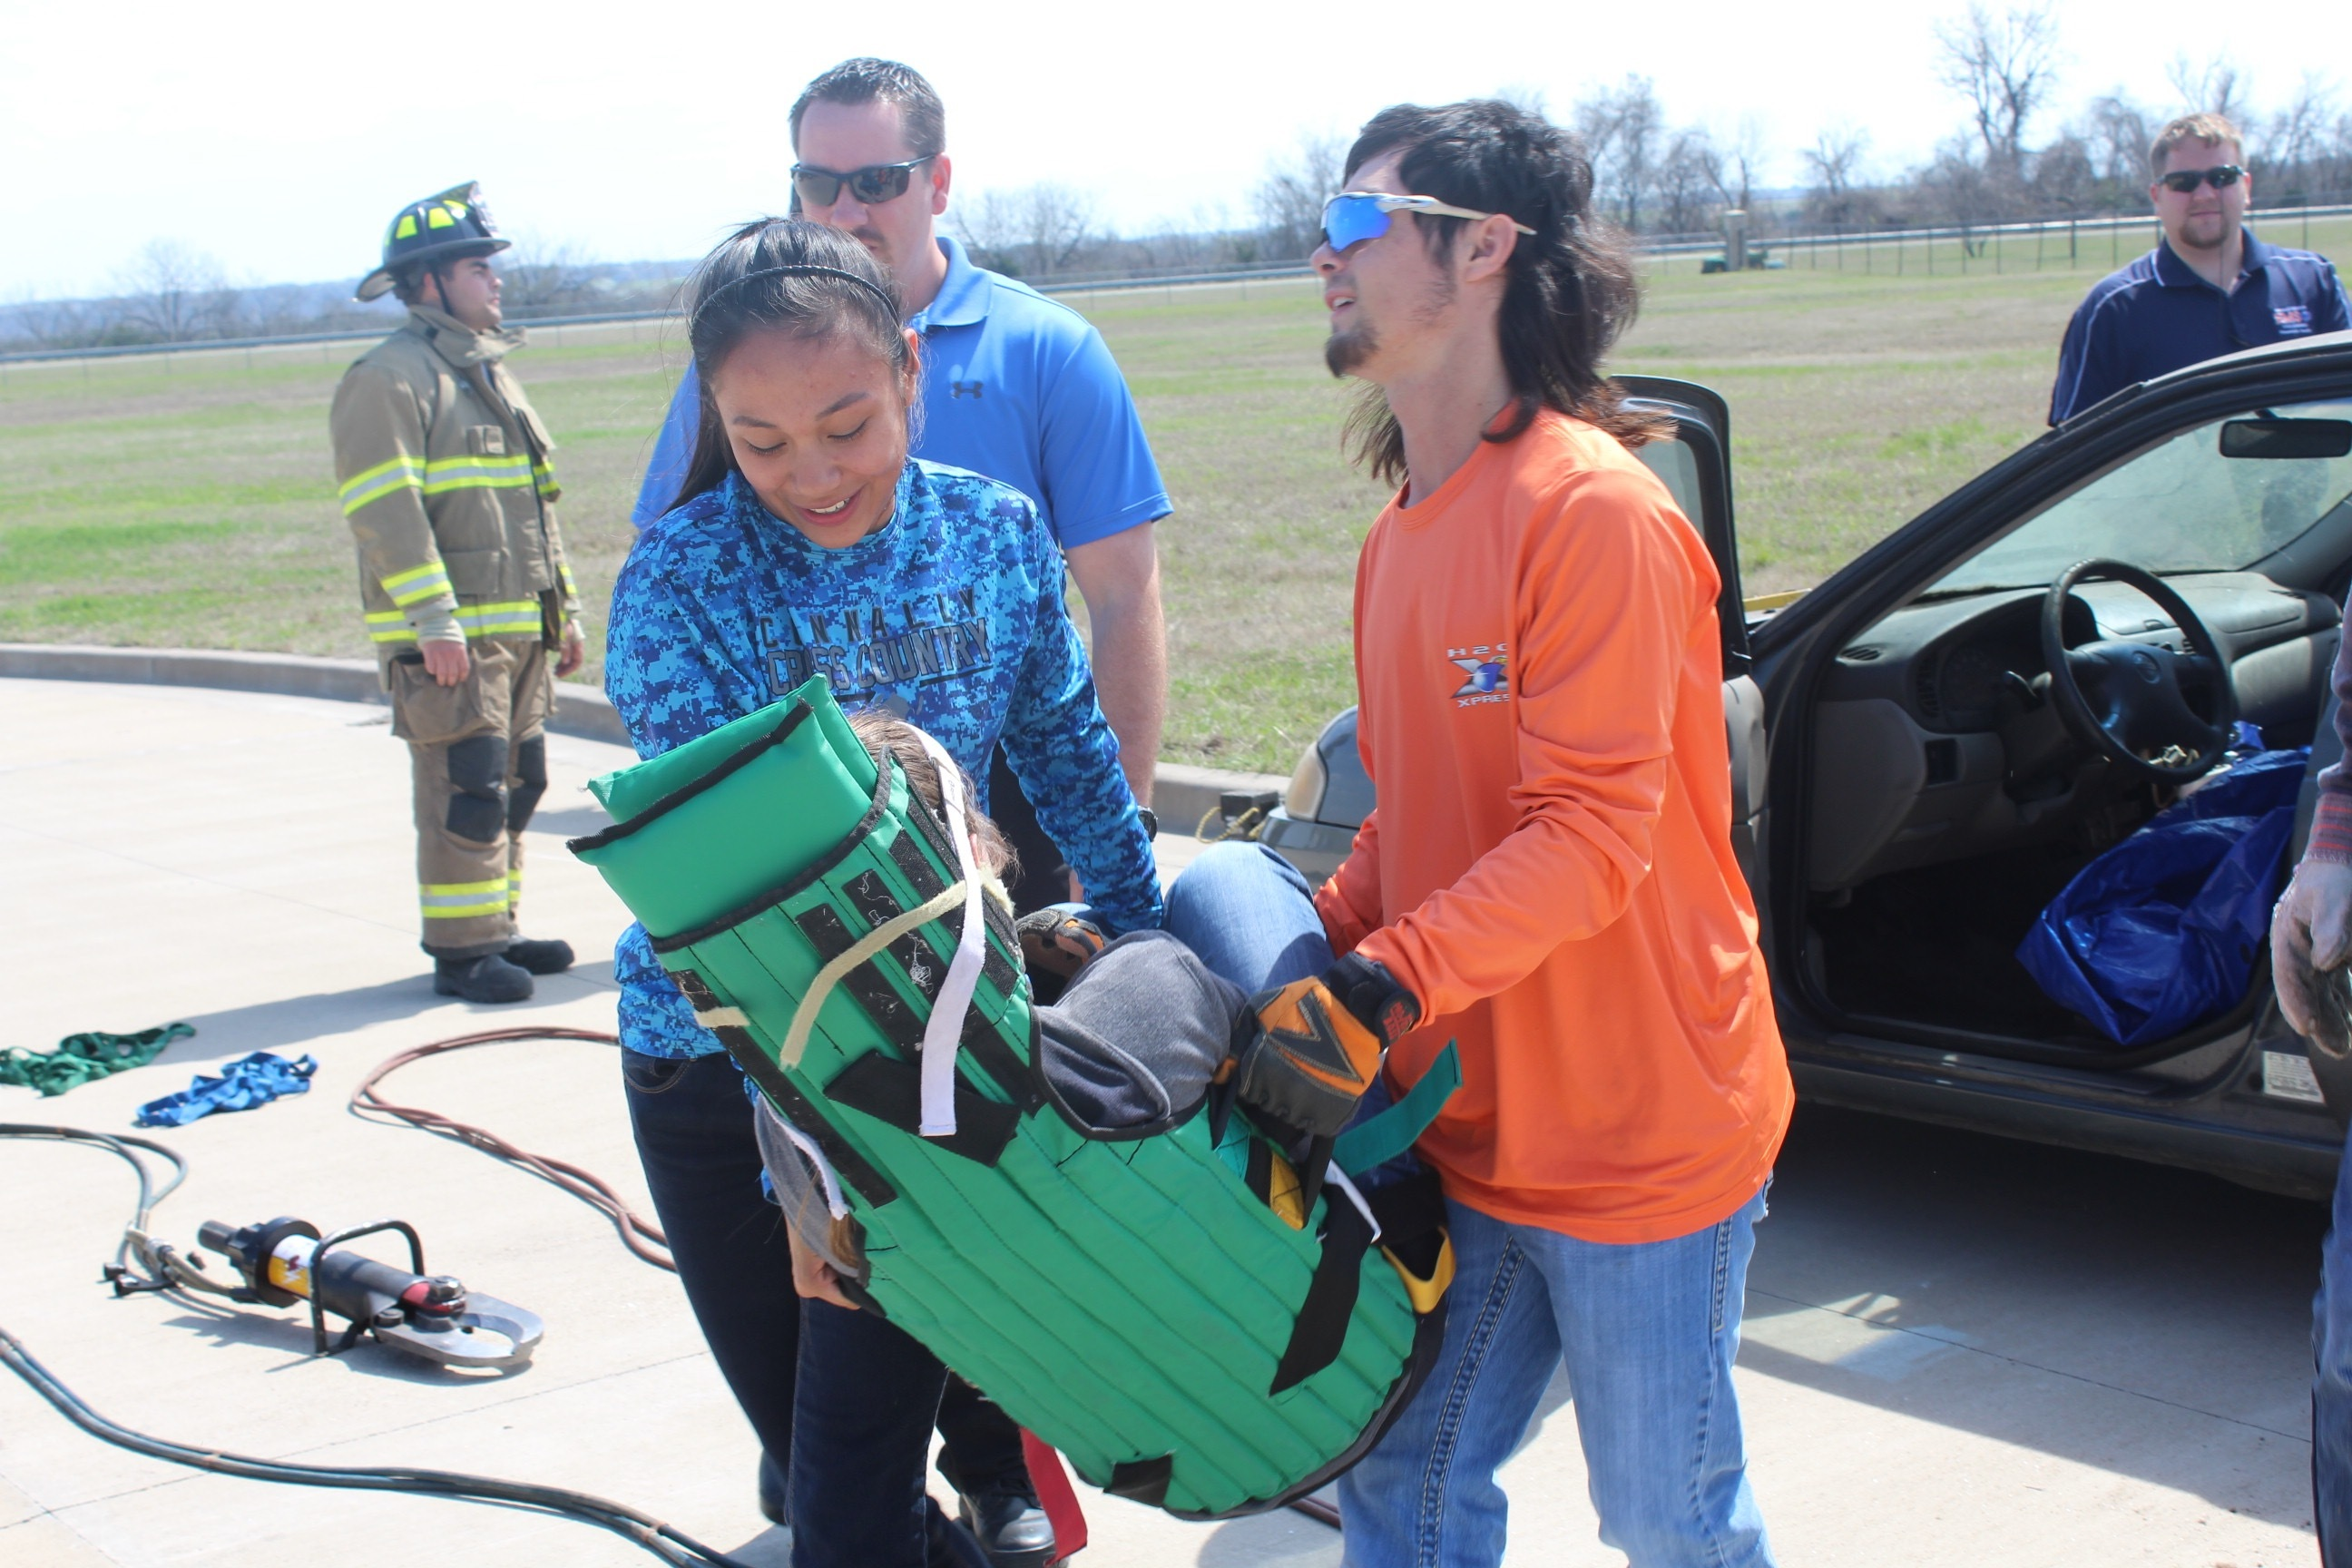 Hannah Fragag and Chandler Anderson participating in an EMT demonstration